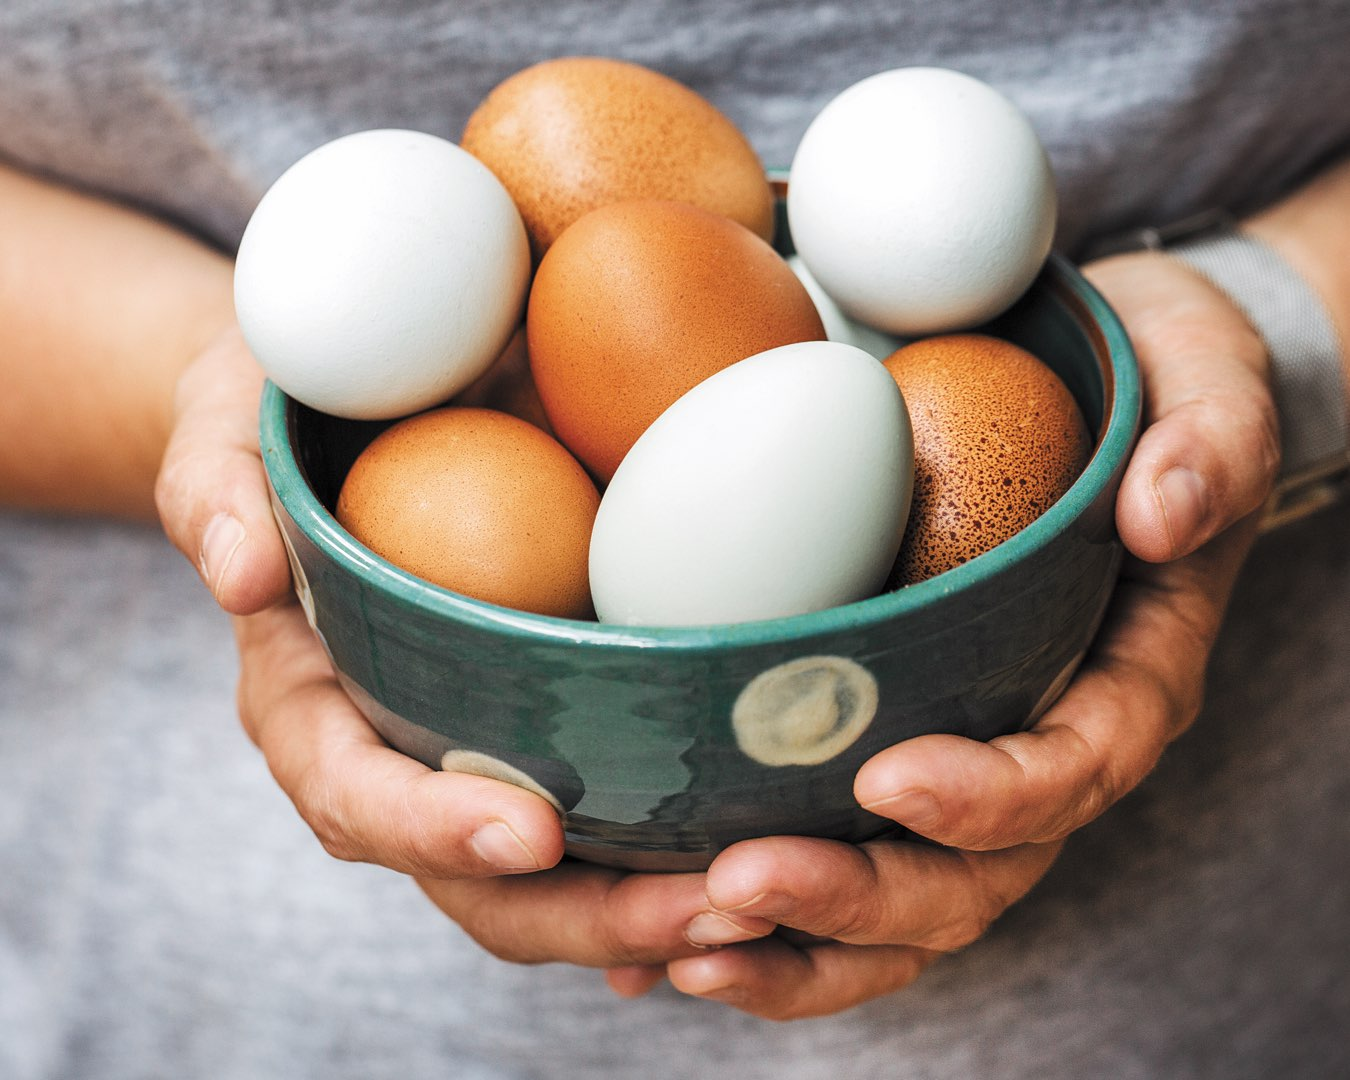 Hands holding a bowl full of brown and white eggs